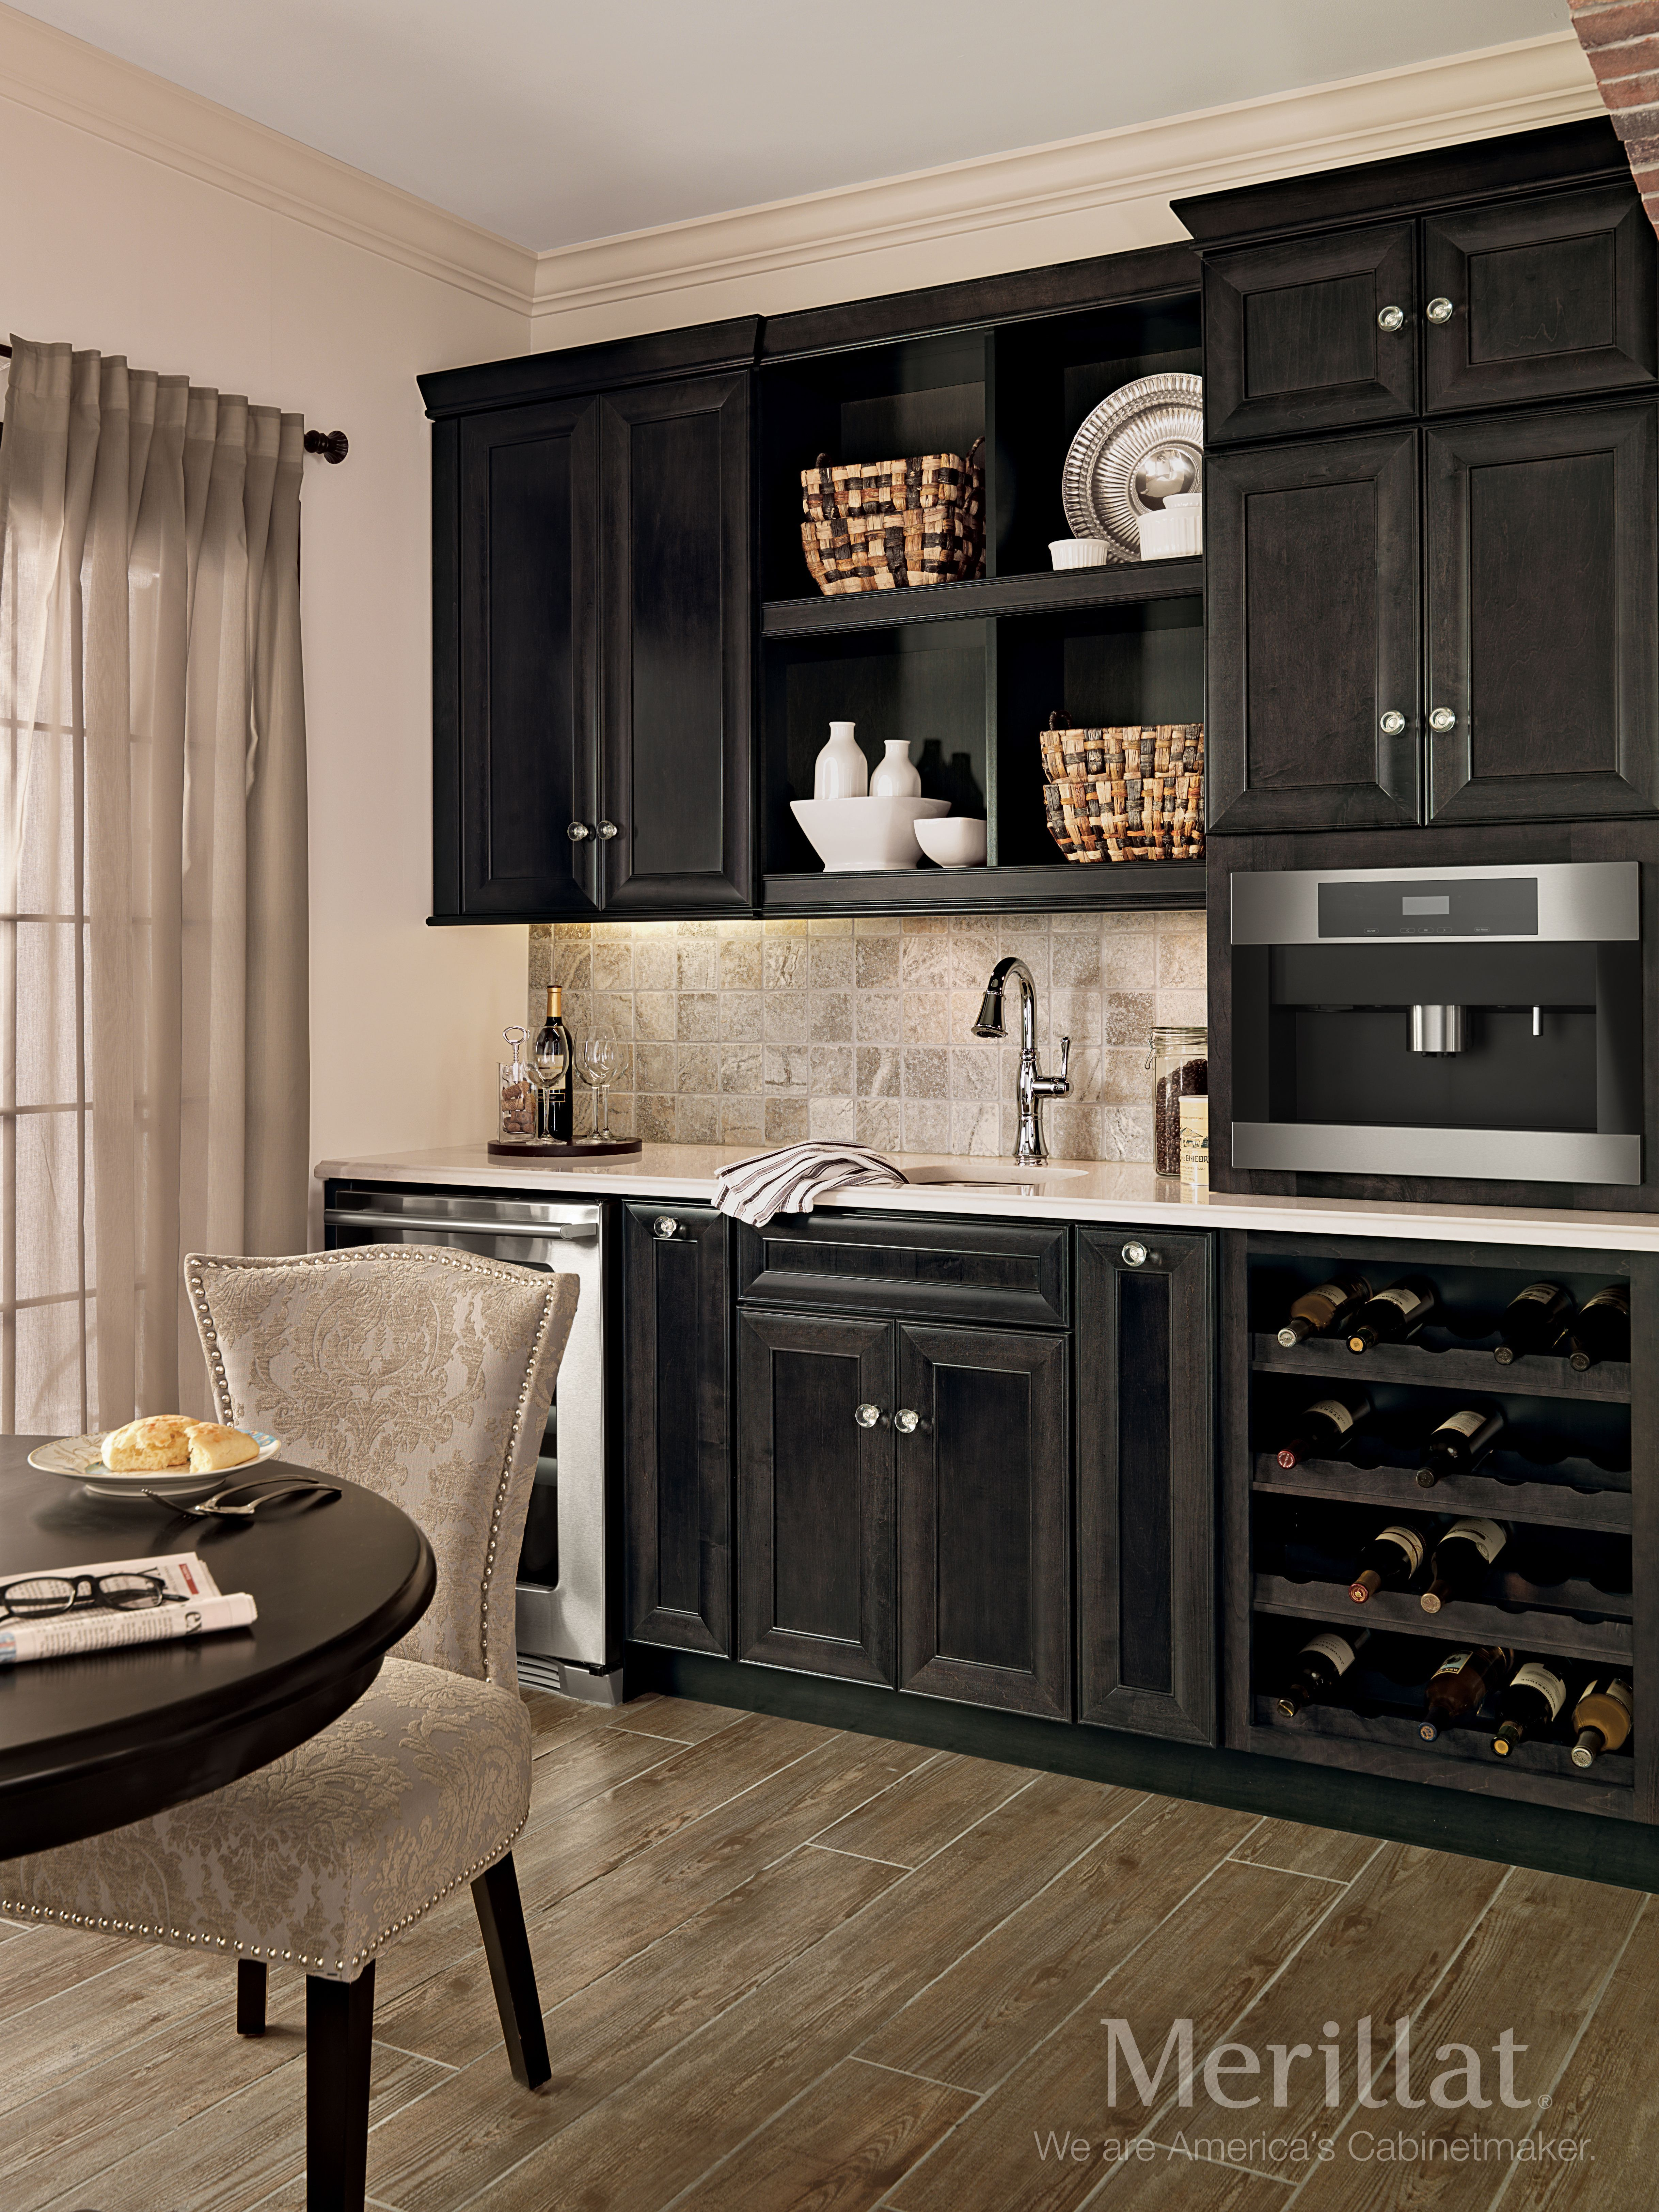 Pin By Merillat Cabinetry On Merillat Classic 2013 Product